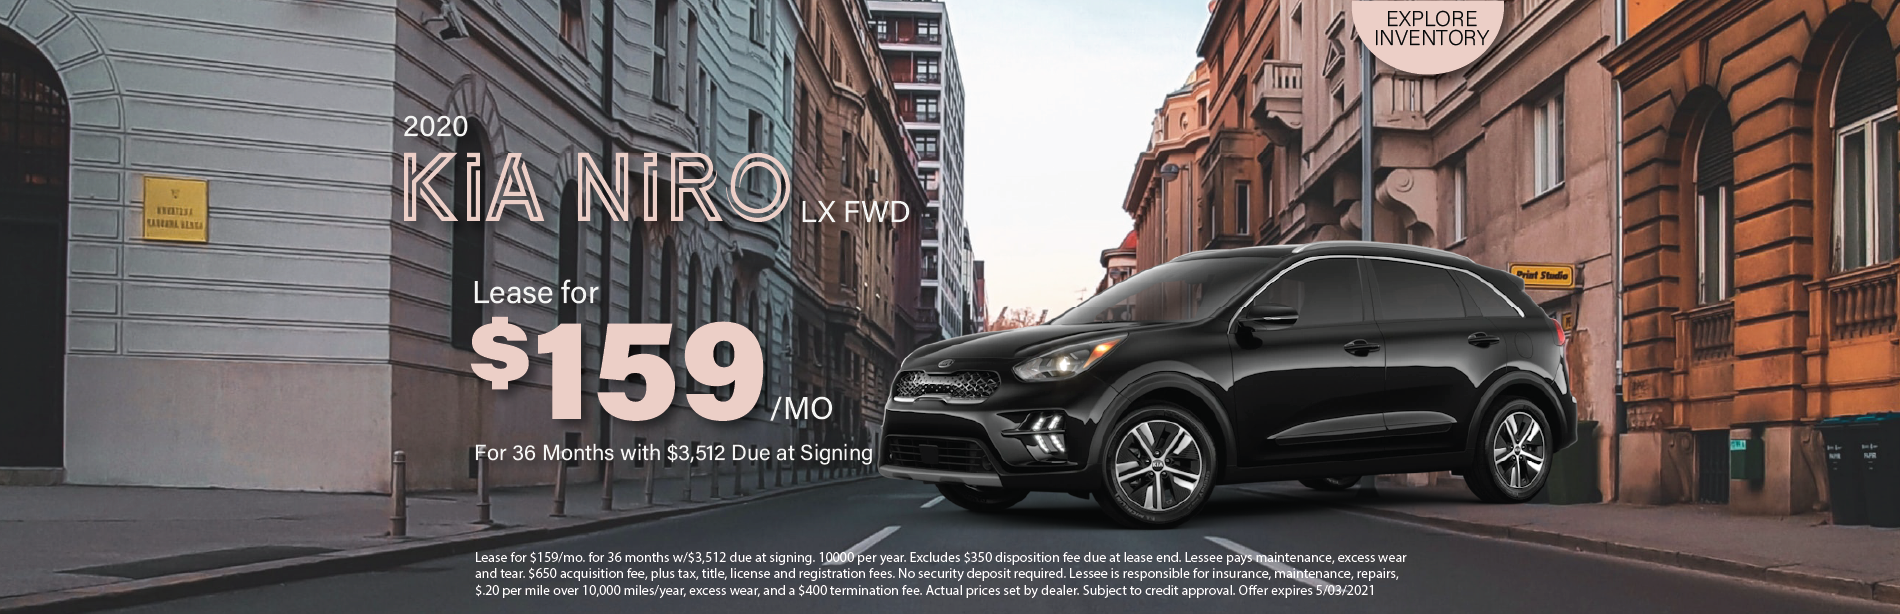 Lafontaine Kia Niro- April 2021